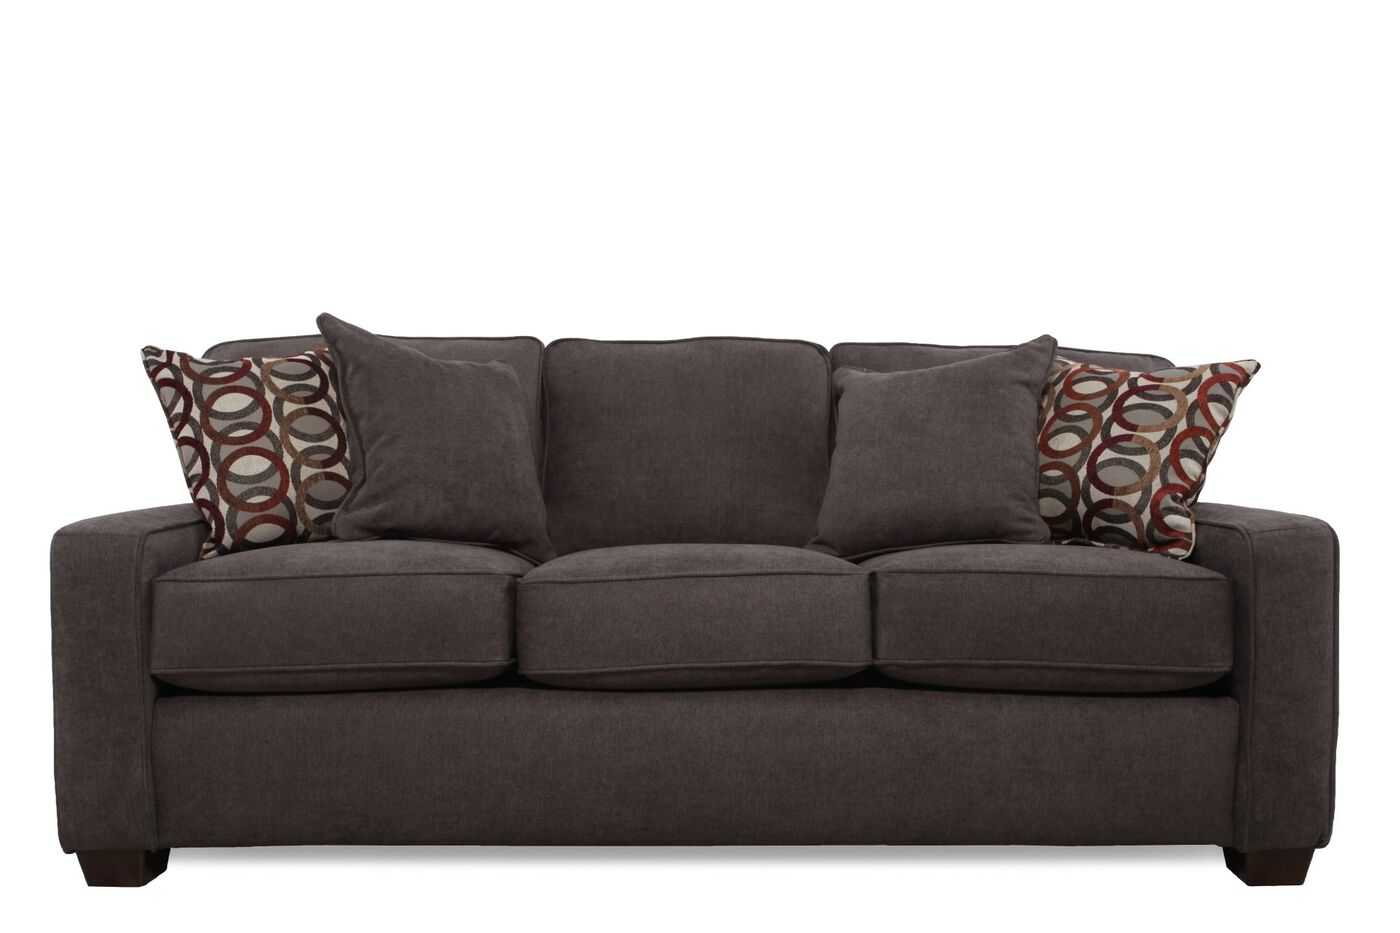 Casual 82 Quot Queen Sleeper Sofa In Dark Granite Gray